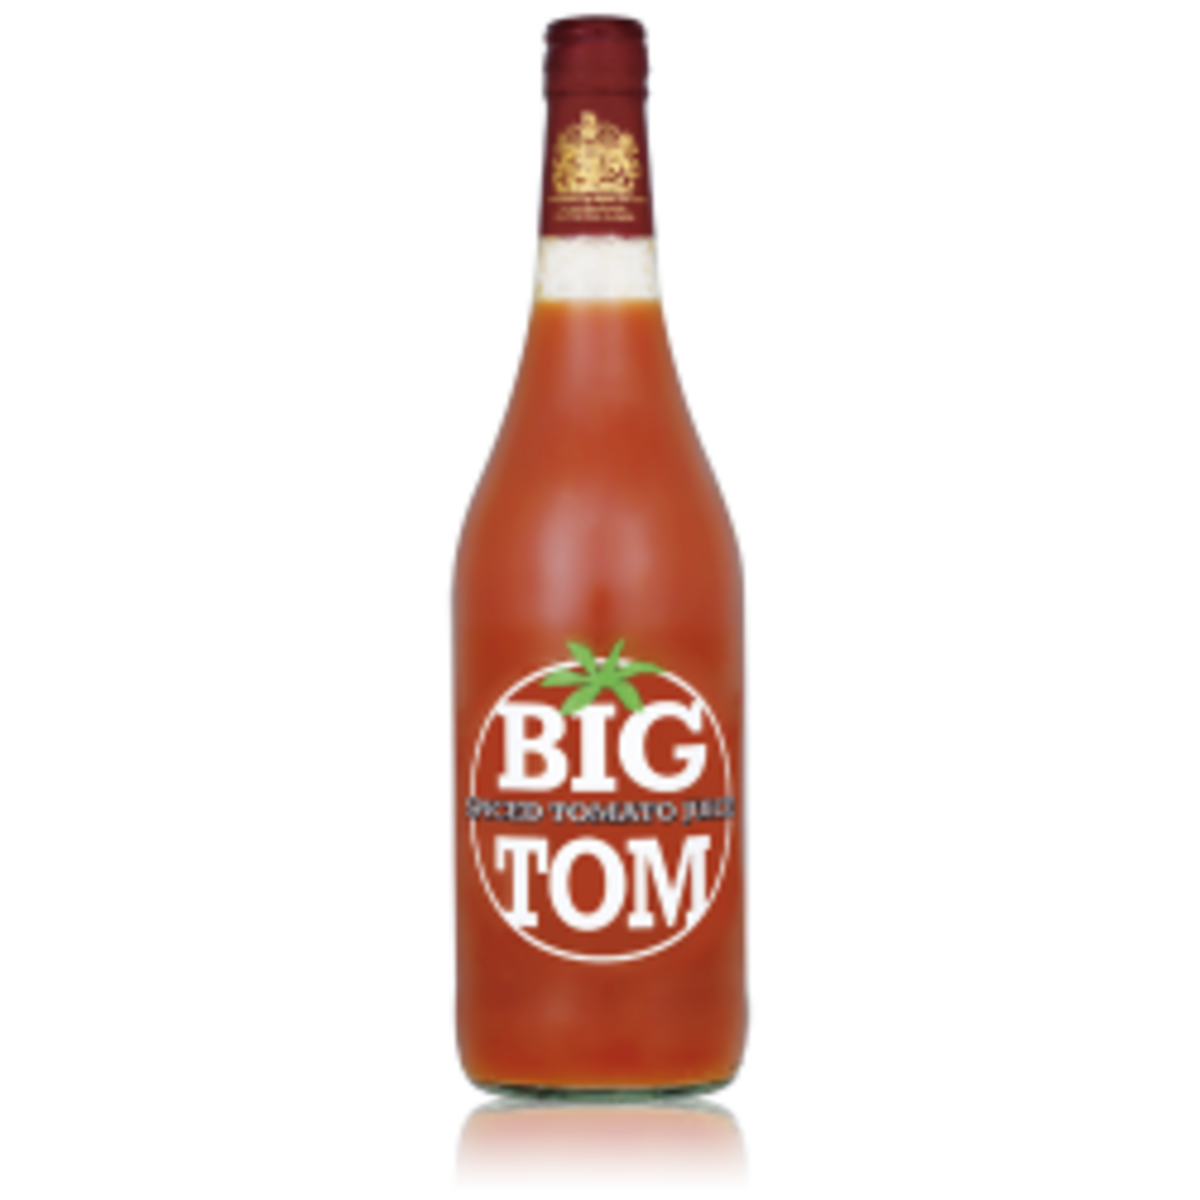 'Big Tom' Tomato juice; a favourite of Queen Elizabeth II